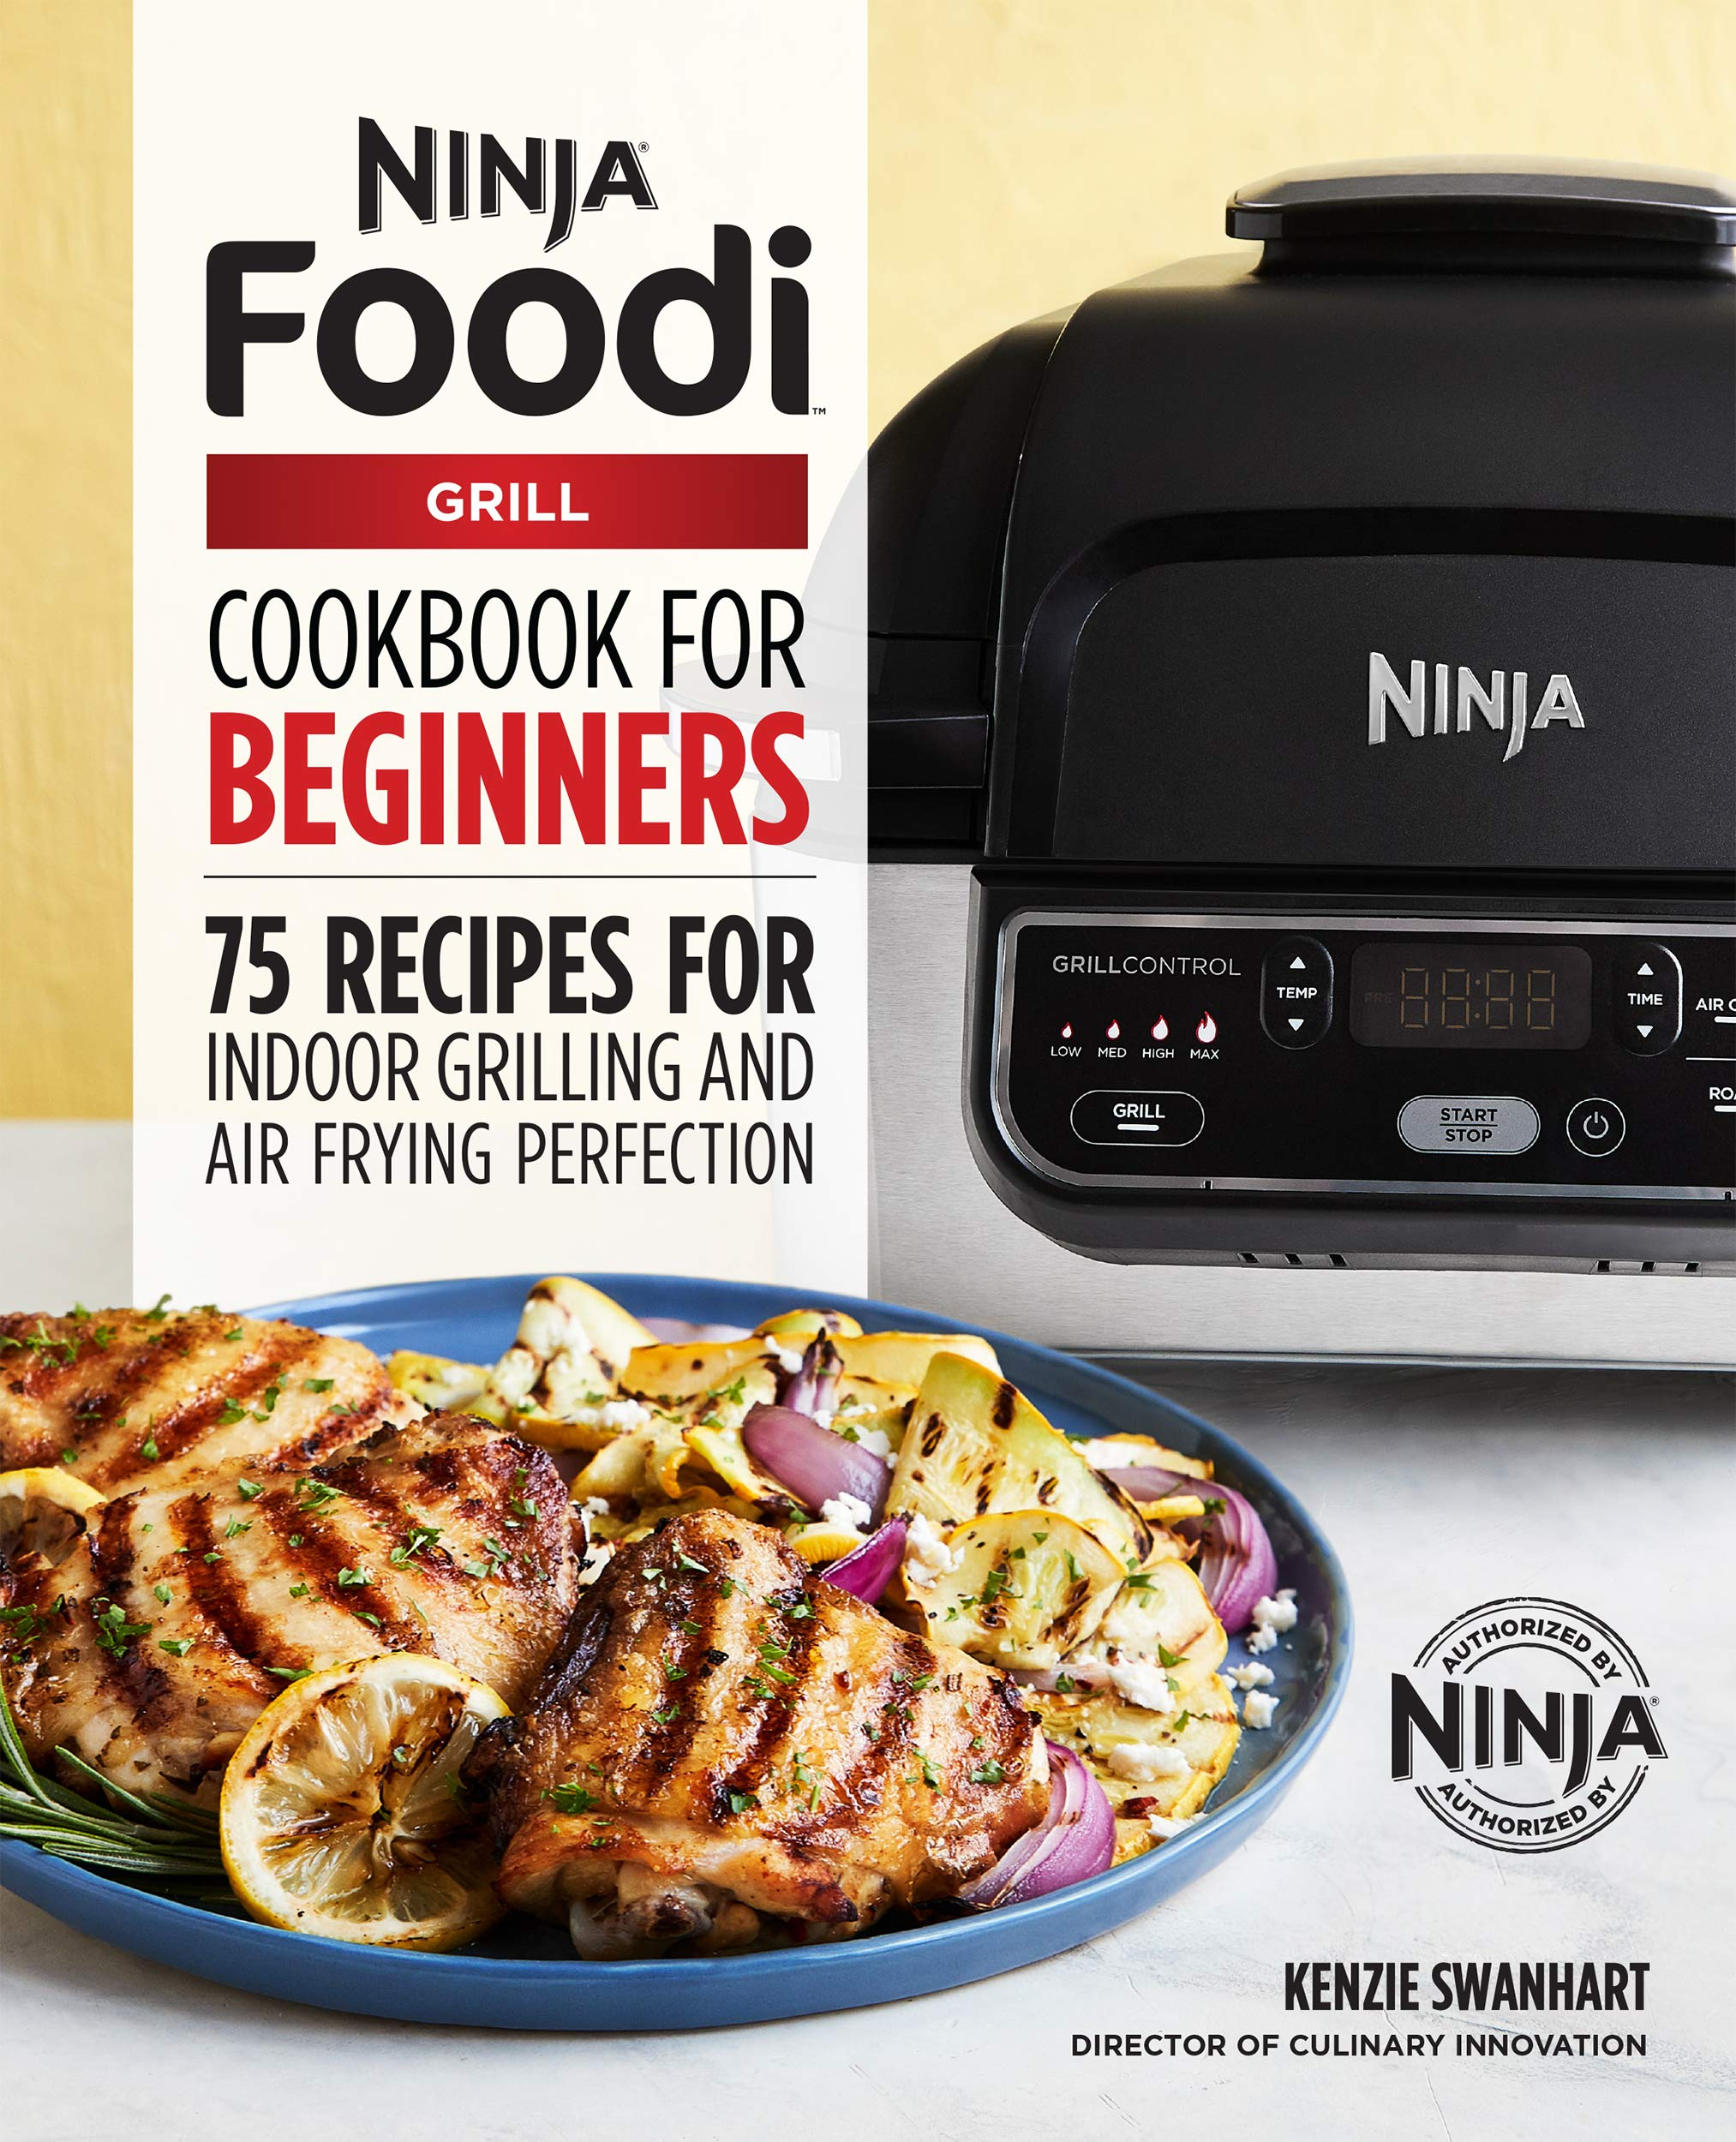 The Official Ninja Foodi Grill Cookbook for Beginners: 75 Recipes for Indoor Grilling and Air Frying Perfection by Rockridge Press